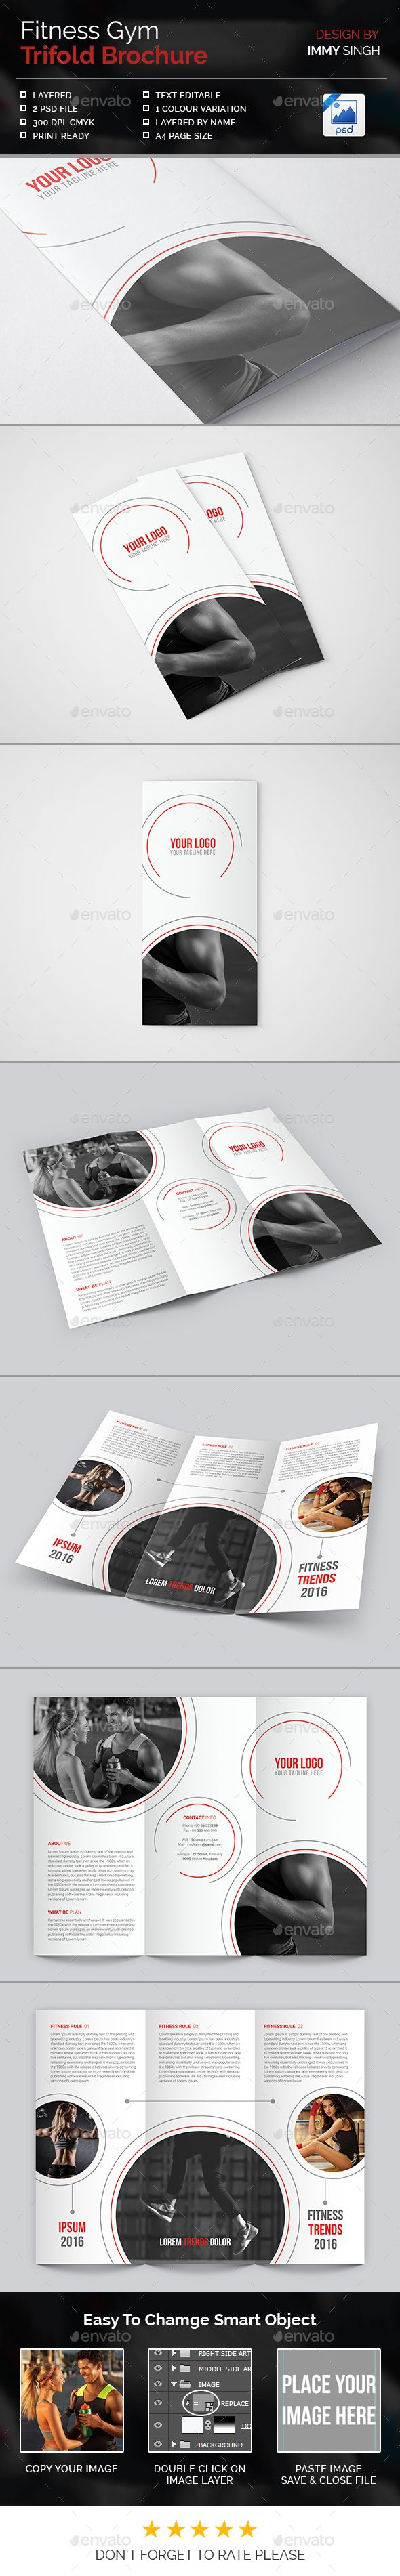 Fitness Gym Trifold Brochure Template PSD #design Download: http://graphicriver.net/item/fitness-gym-trifold-brochure/14320119?ref=ksioks